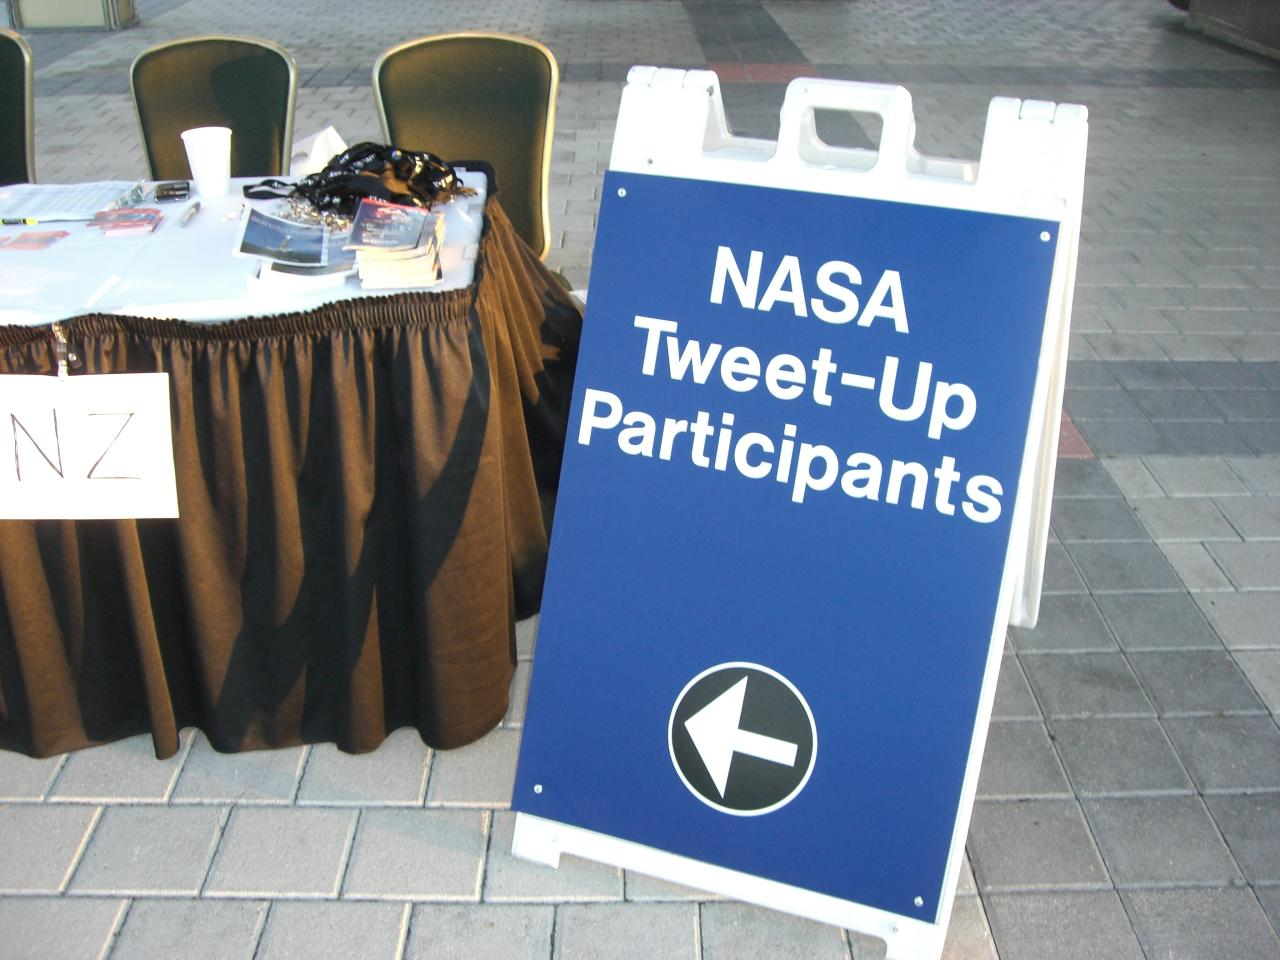 NASA Tweetup check-in table